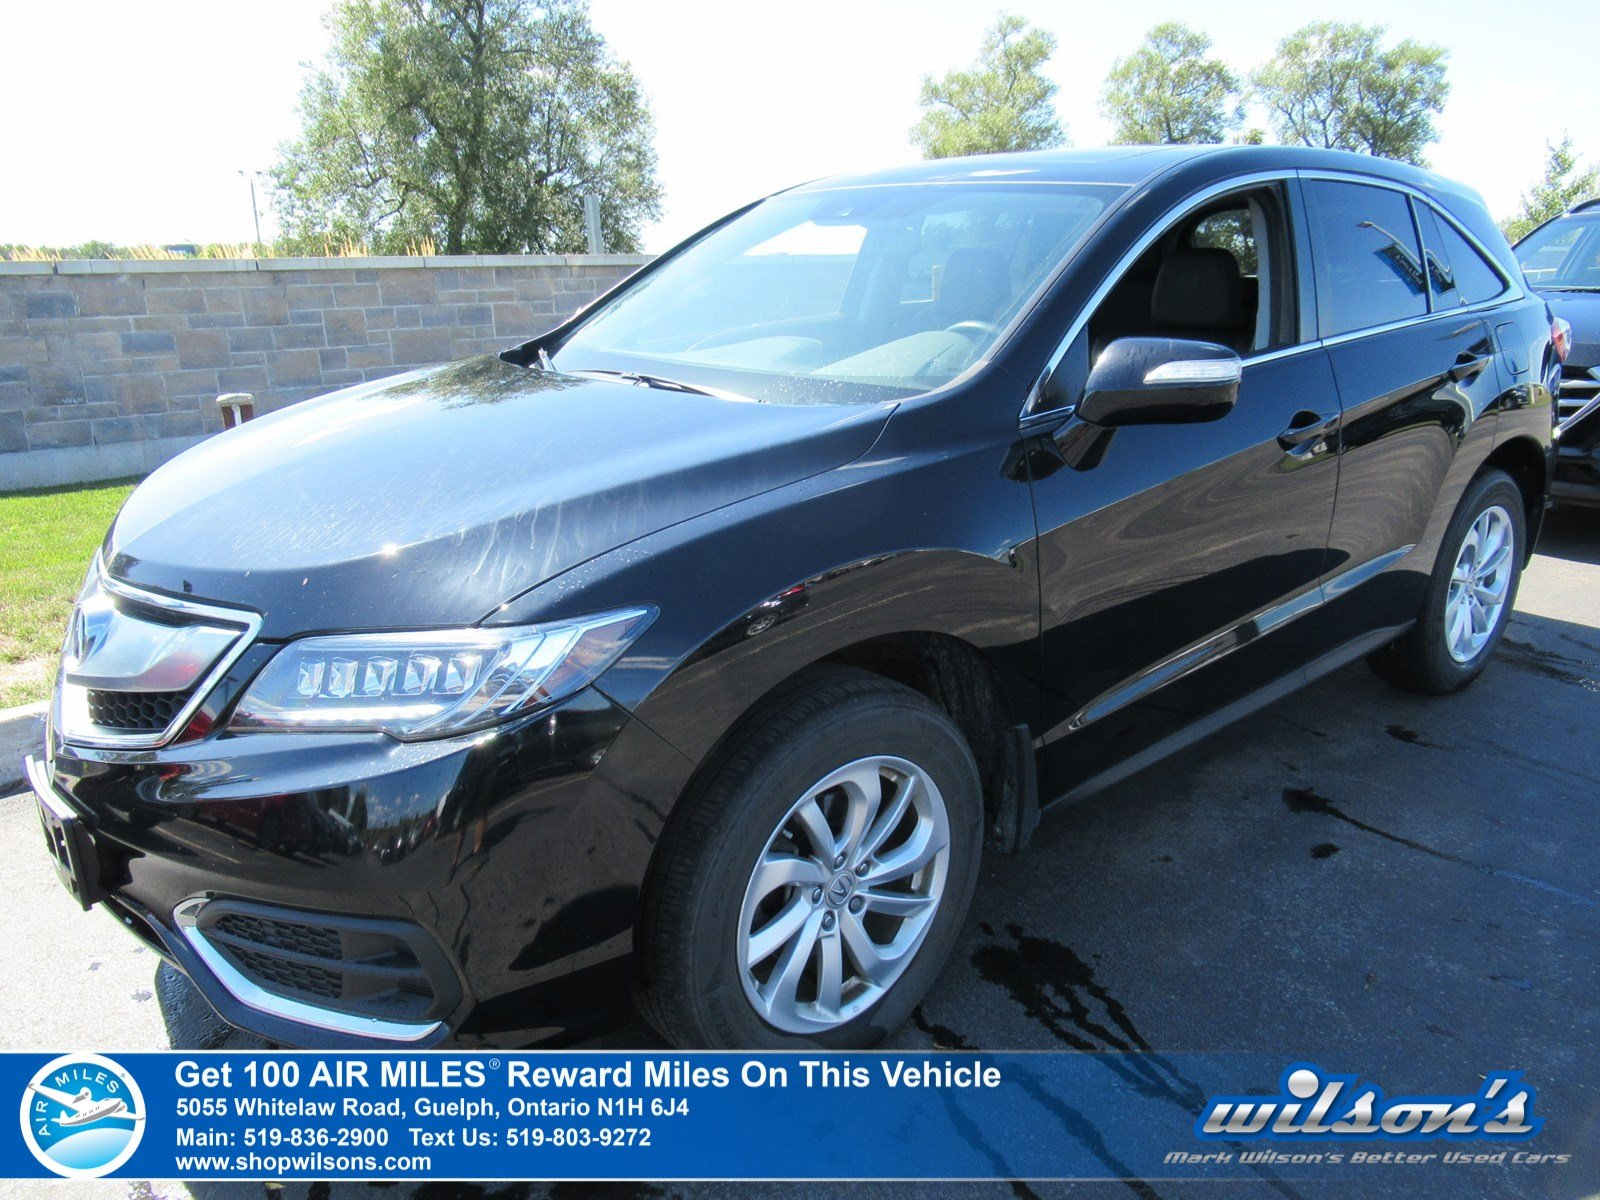 "Certified Pre-Owned 2017 Acura RDX AWD – New Tires! Leather, Sunroof, Bluetooth, Heated + Memory Seats, 18"" Alloys and more!"